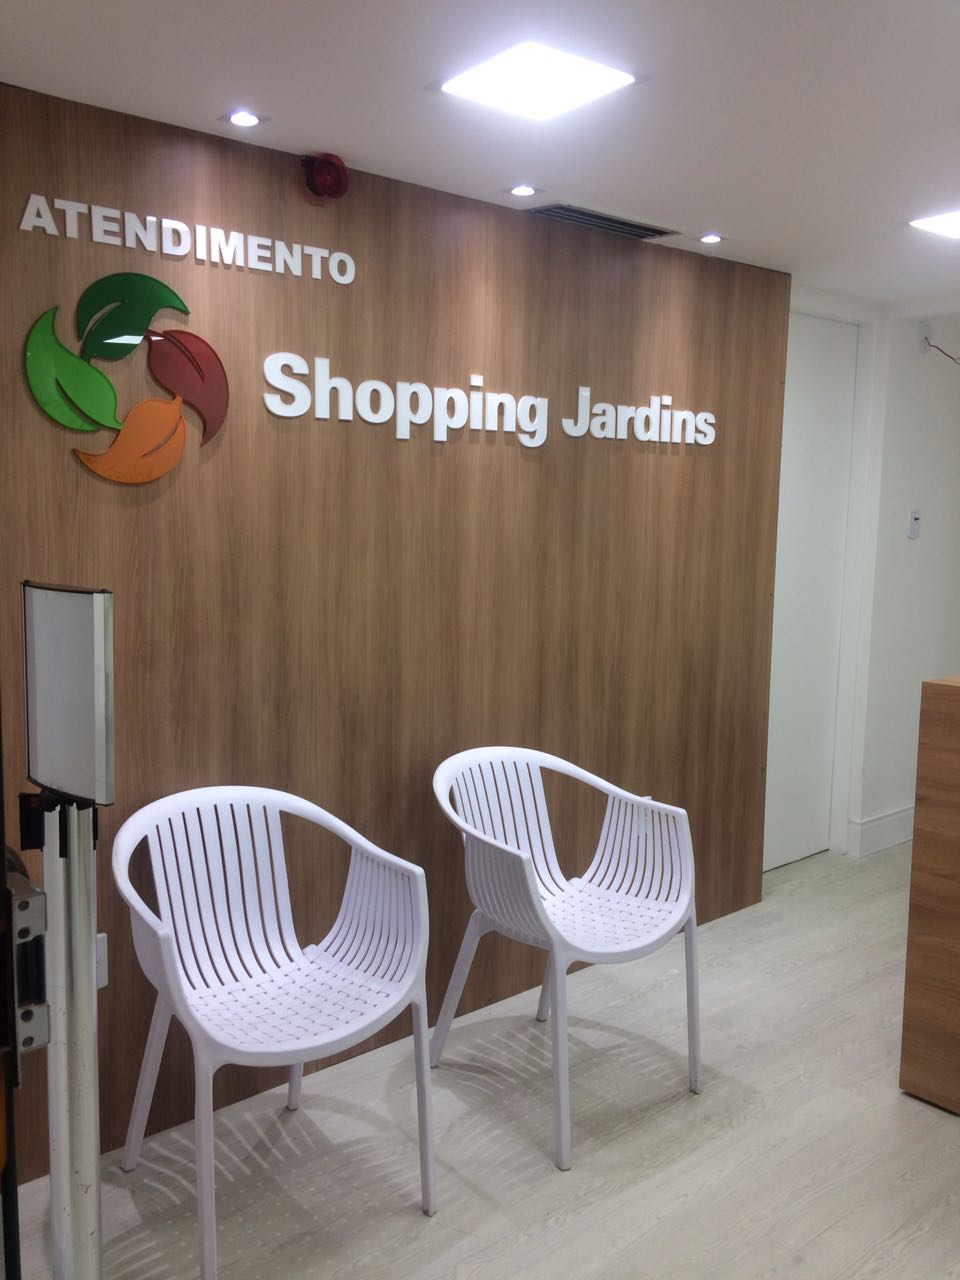 Reforma no Shopping Jardins